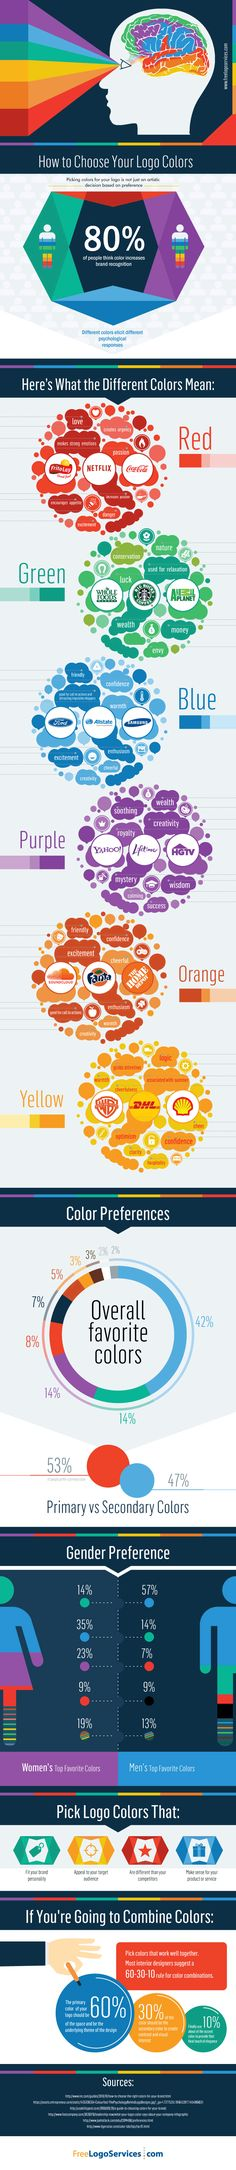 How to choose the best color scheme for your logo design